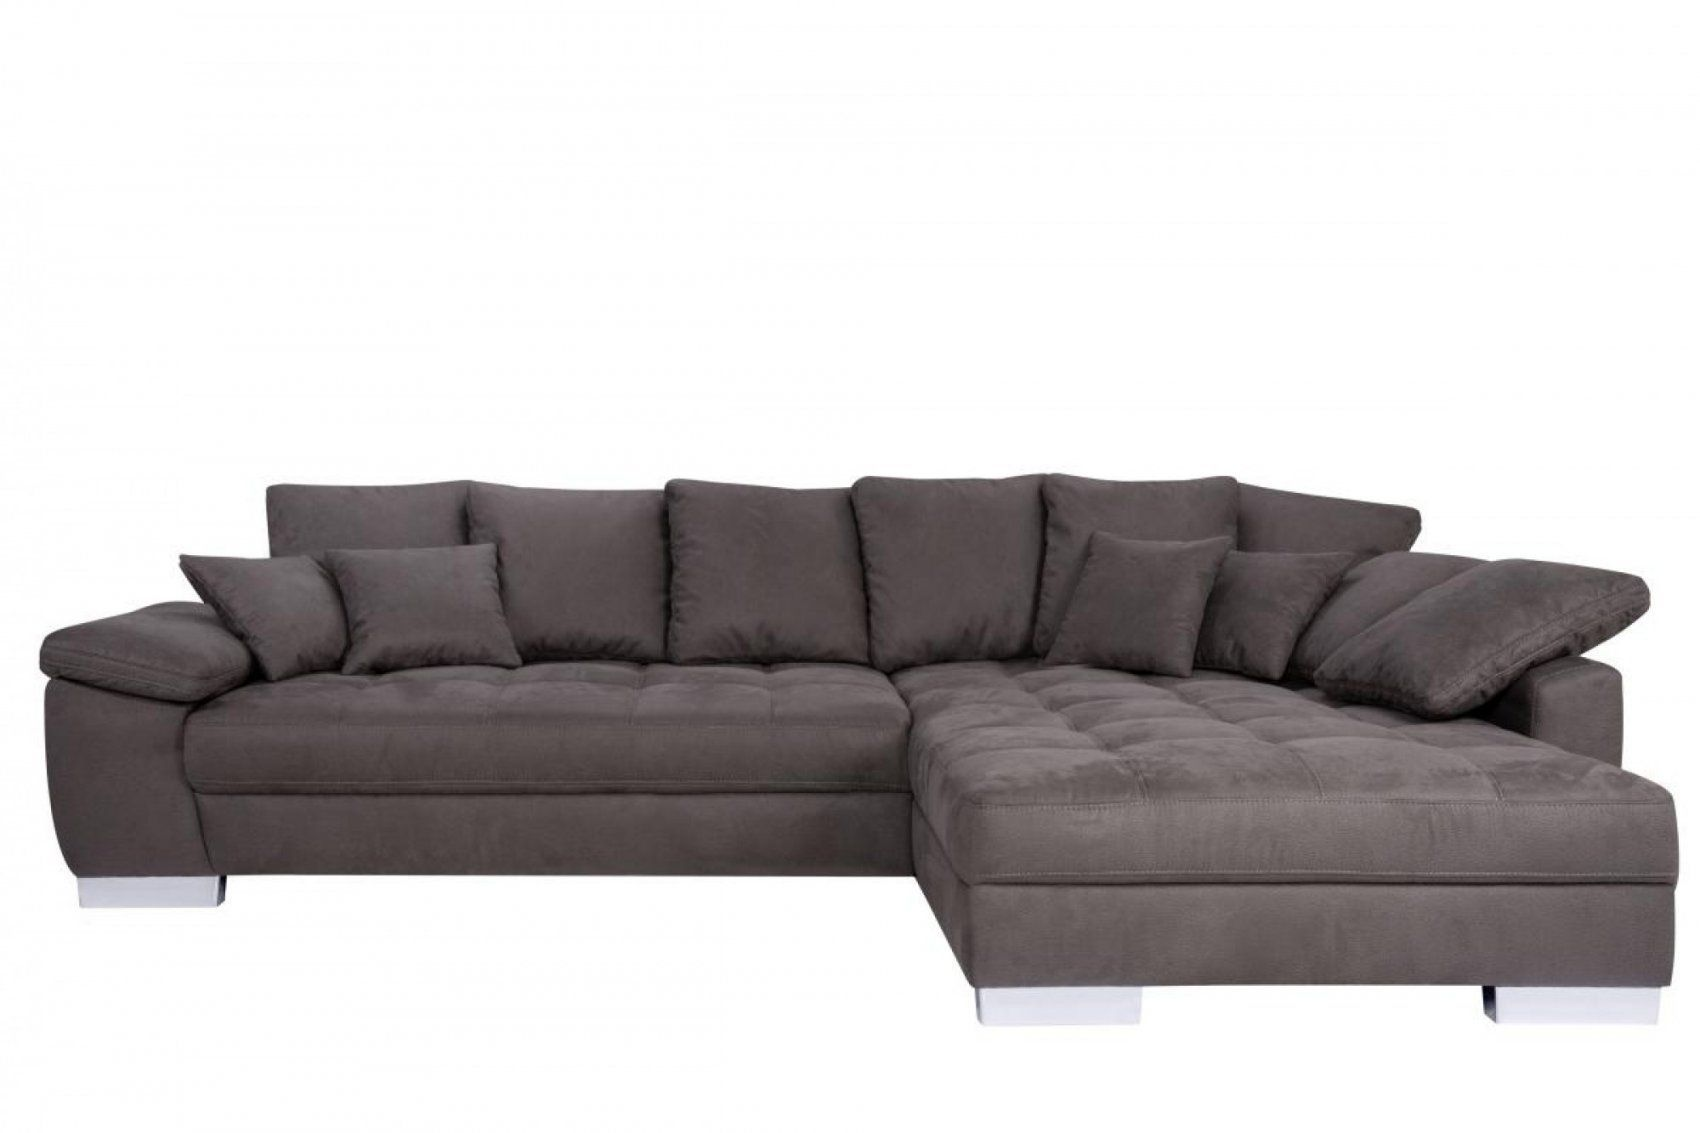 Fresh Big Sofa Poco 36 With Big Sofa Poco Von Big Sofa Poco Domane Bild Wohnzimmer Couch Big Sofa Poco Couch